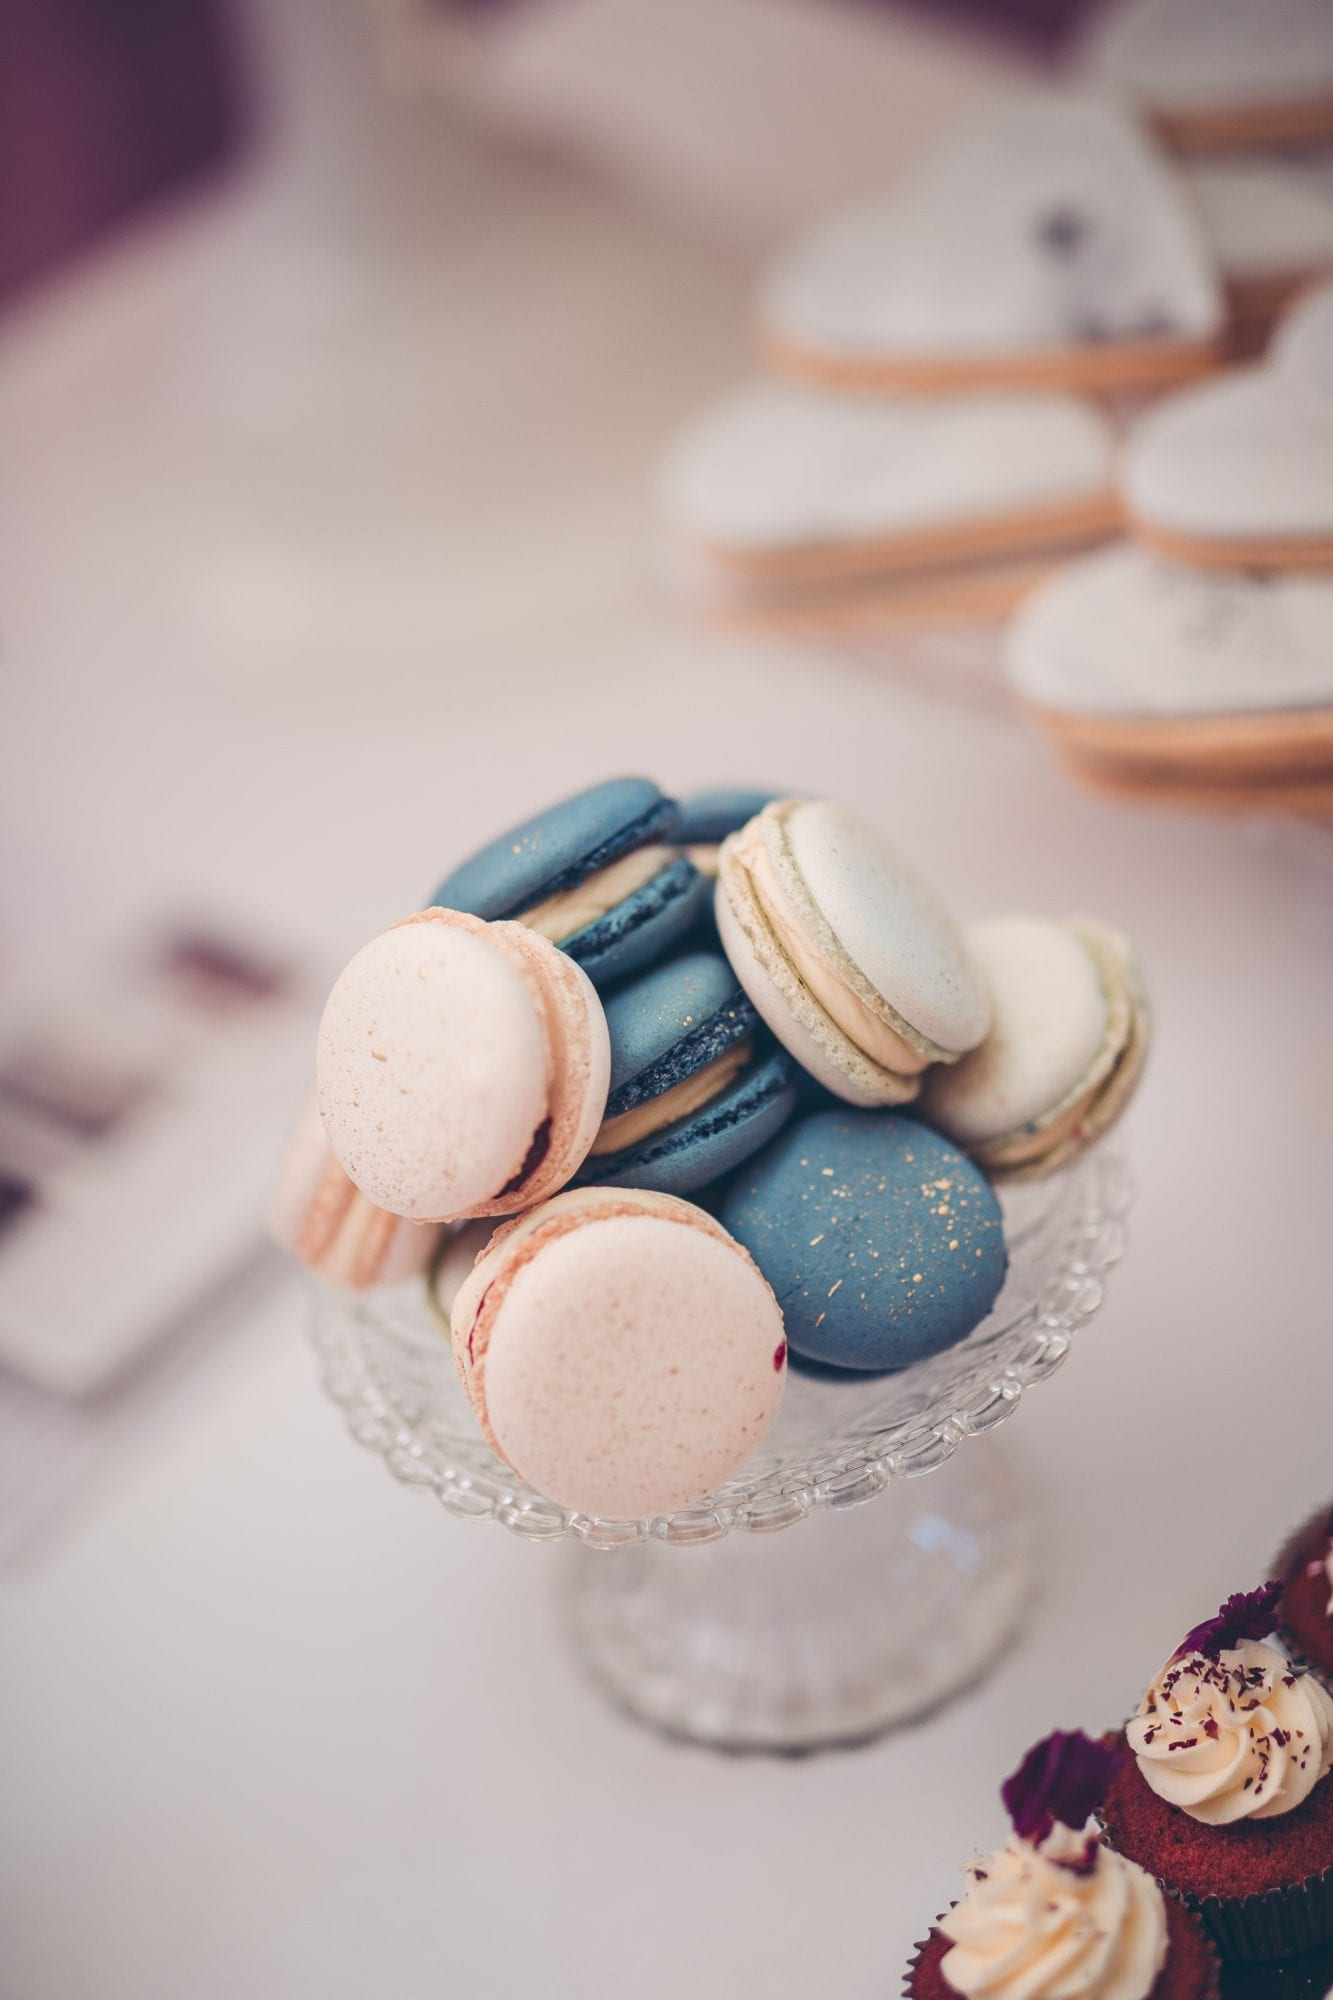 The Grand Macarons